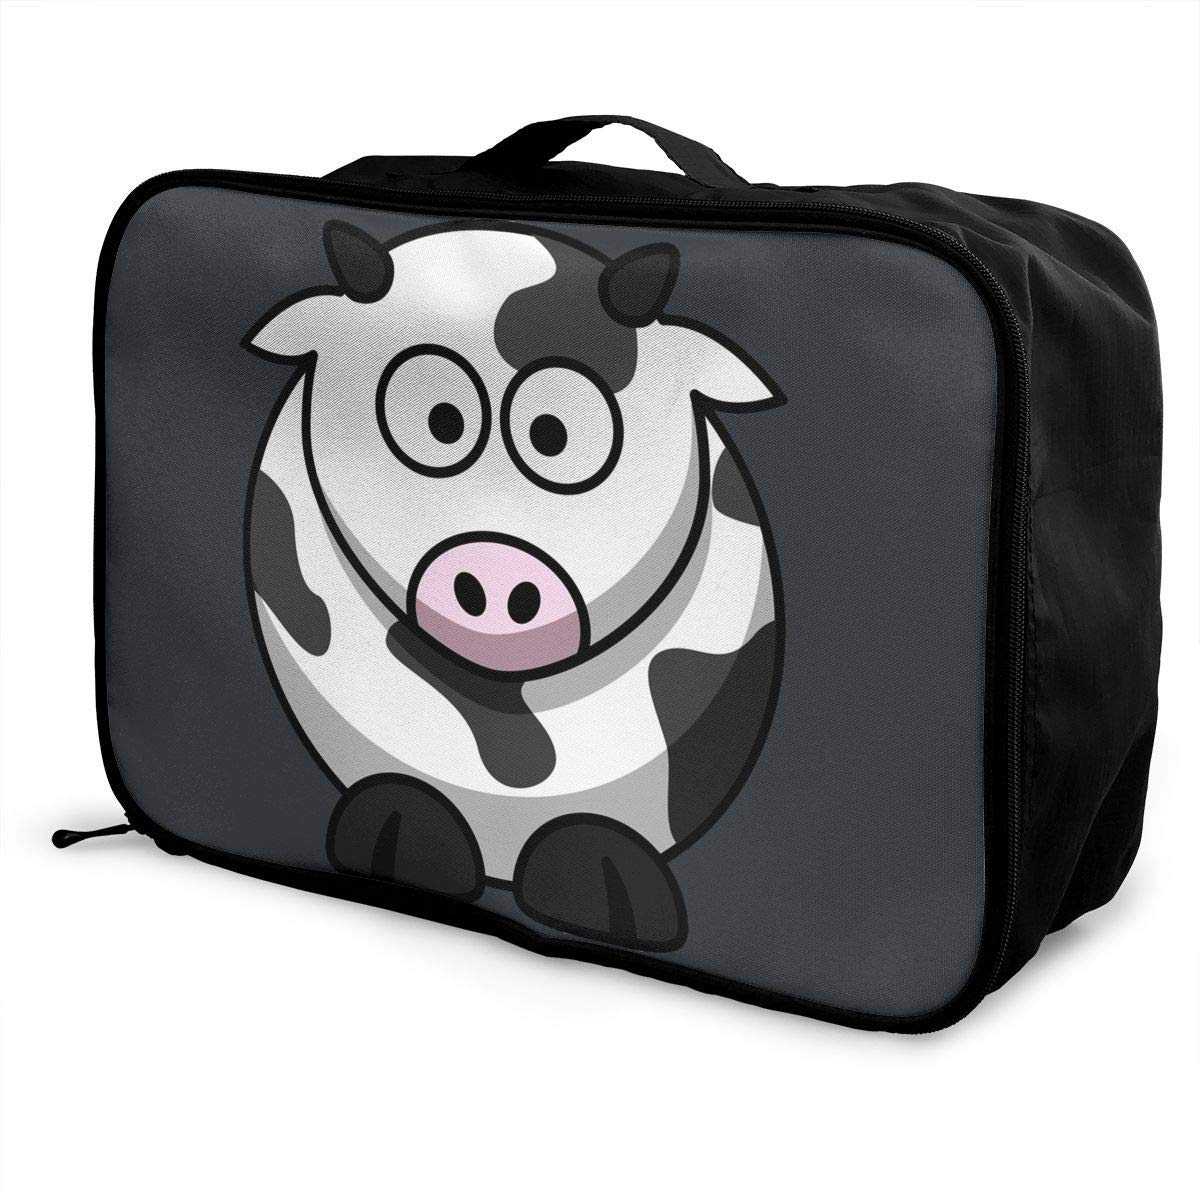 Portable Luggage Duffel Bag Cartoon Cow Travel Bags Carry-on In Trolley Handle